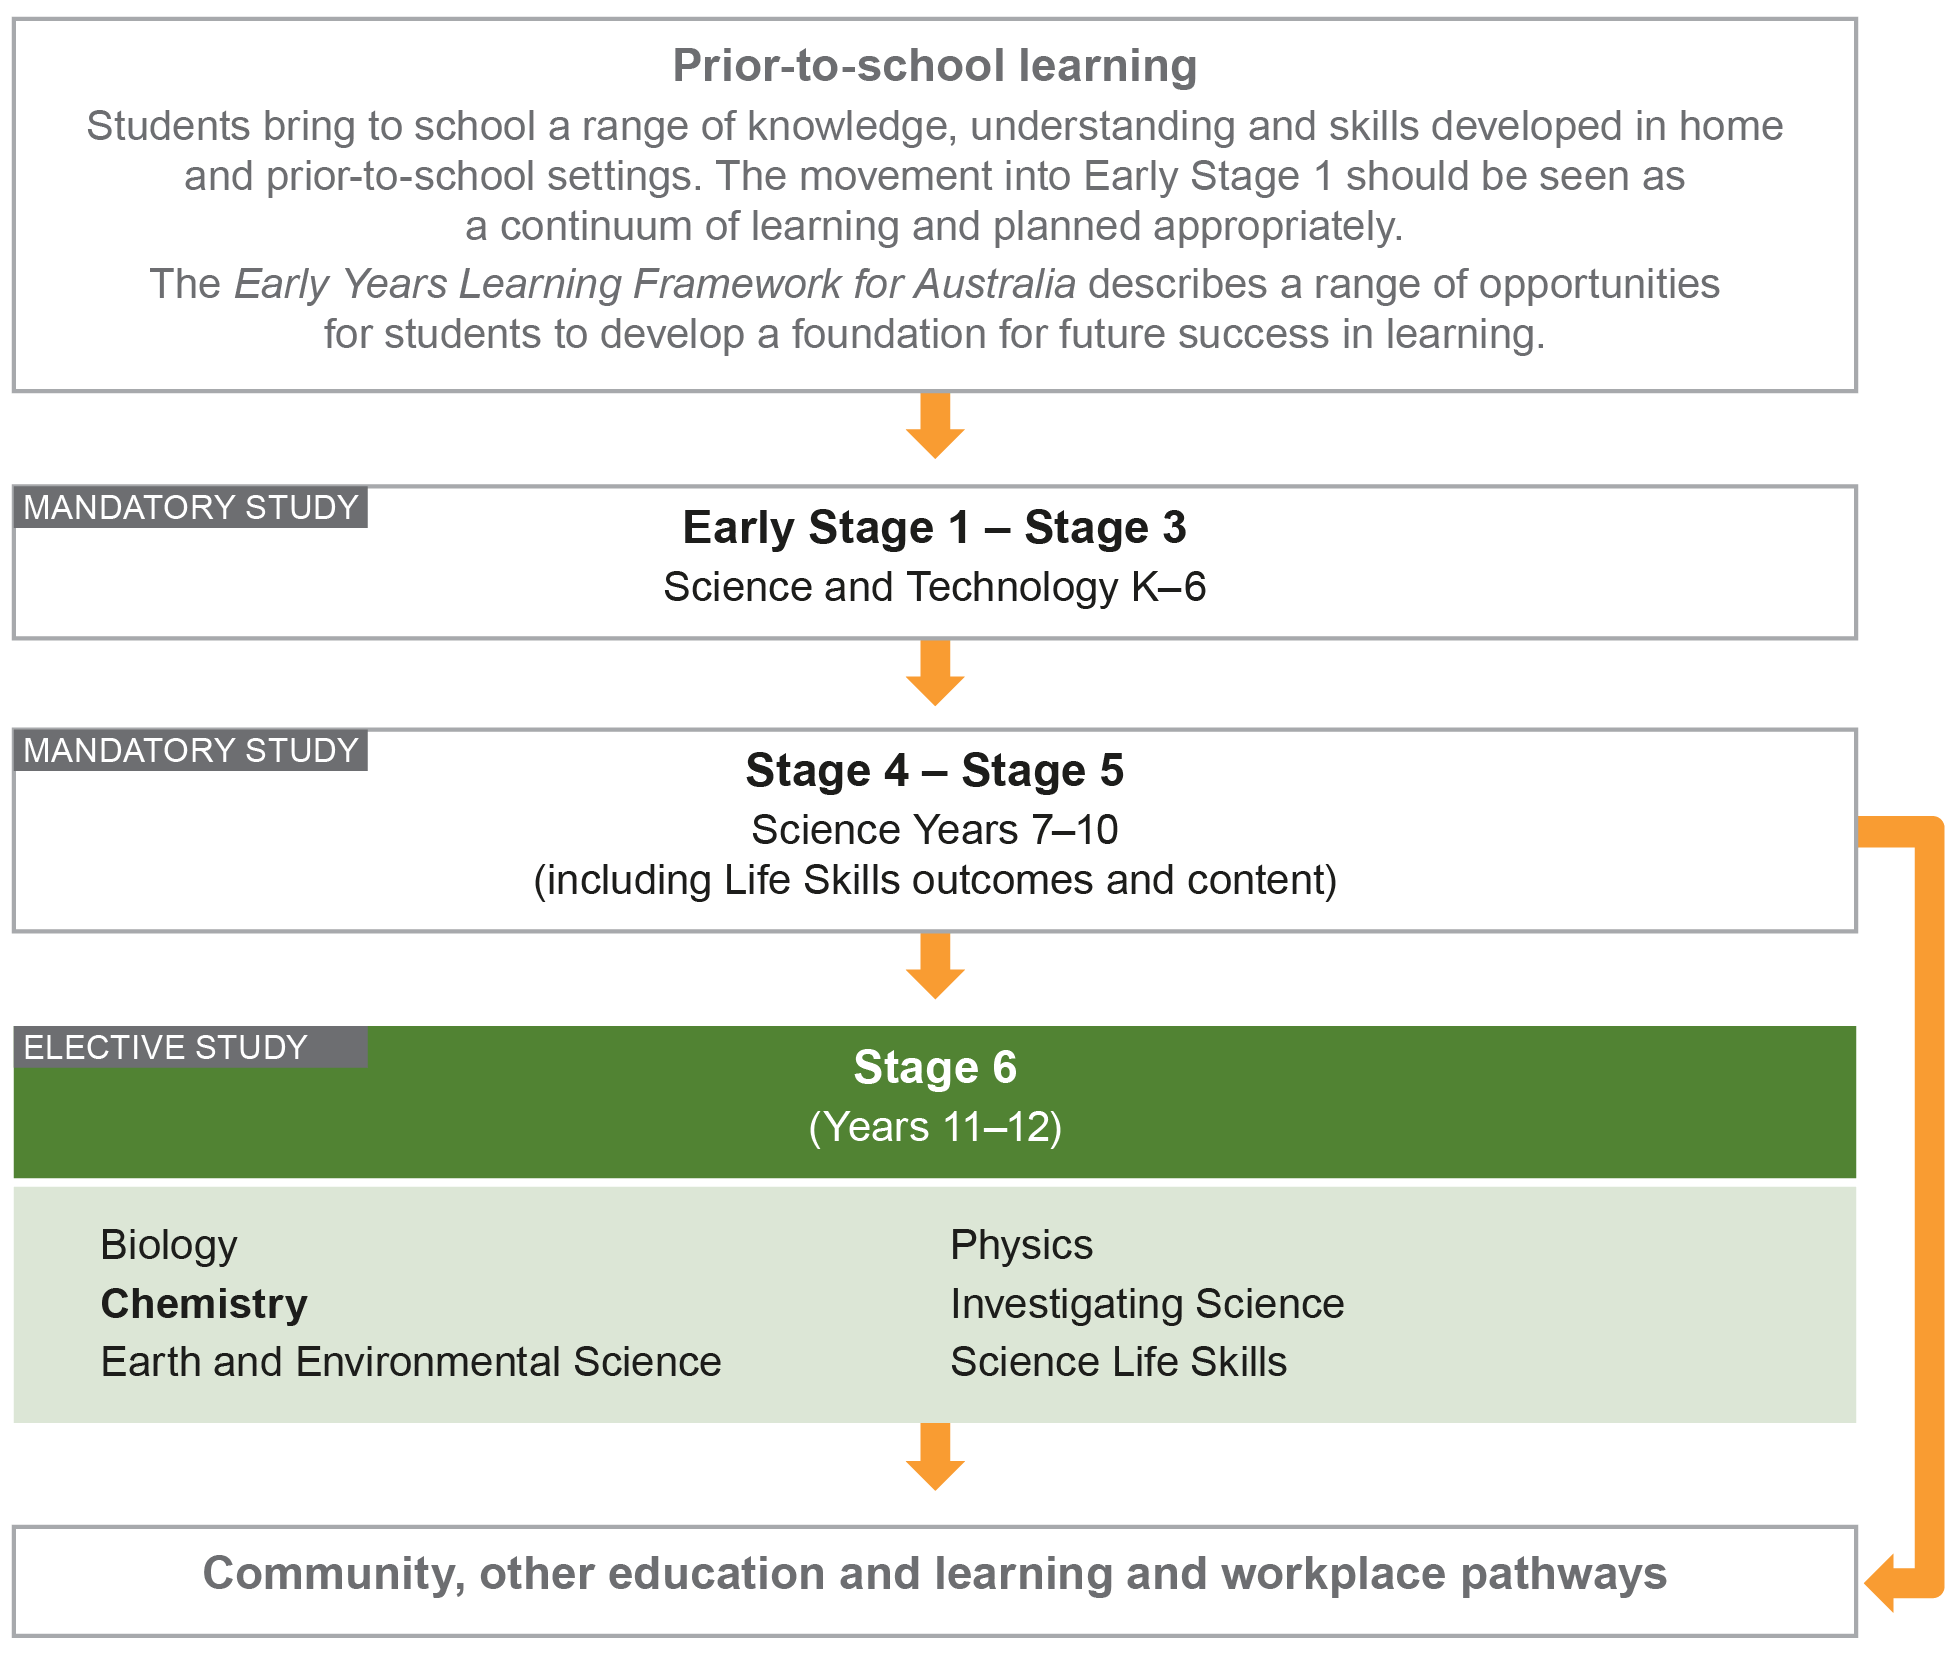 This diagram places Chemistry Stage 6 in the K–12 curriculum as a whole and shows the flow of learning from prior to starting school, to post school pathways. The diagram begins with prior to school learning, explaining how students bring a range of knowledge, understanding and skills they develop at home to the school setting in Early Stage 1. Step 2 shows the Early Stage 1 – Stage 3 mandatory Science and Technology K–6 course. Step 3 shows the Stage 4 – Stage 5 mandatory Science Years 7–10 course. Step 4 shows the list of Stage 6 elective Science courses, including Biology, Chemistry, Earth and Environmental Science, Physics, Investigating Science and Science Life Skills. The final step shows community, other education and learning and workplace pathways.